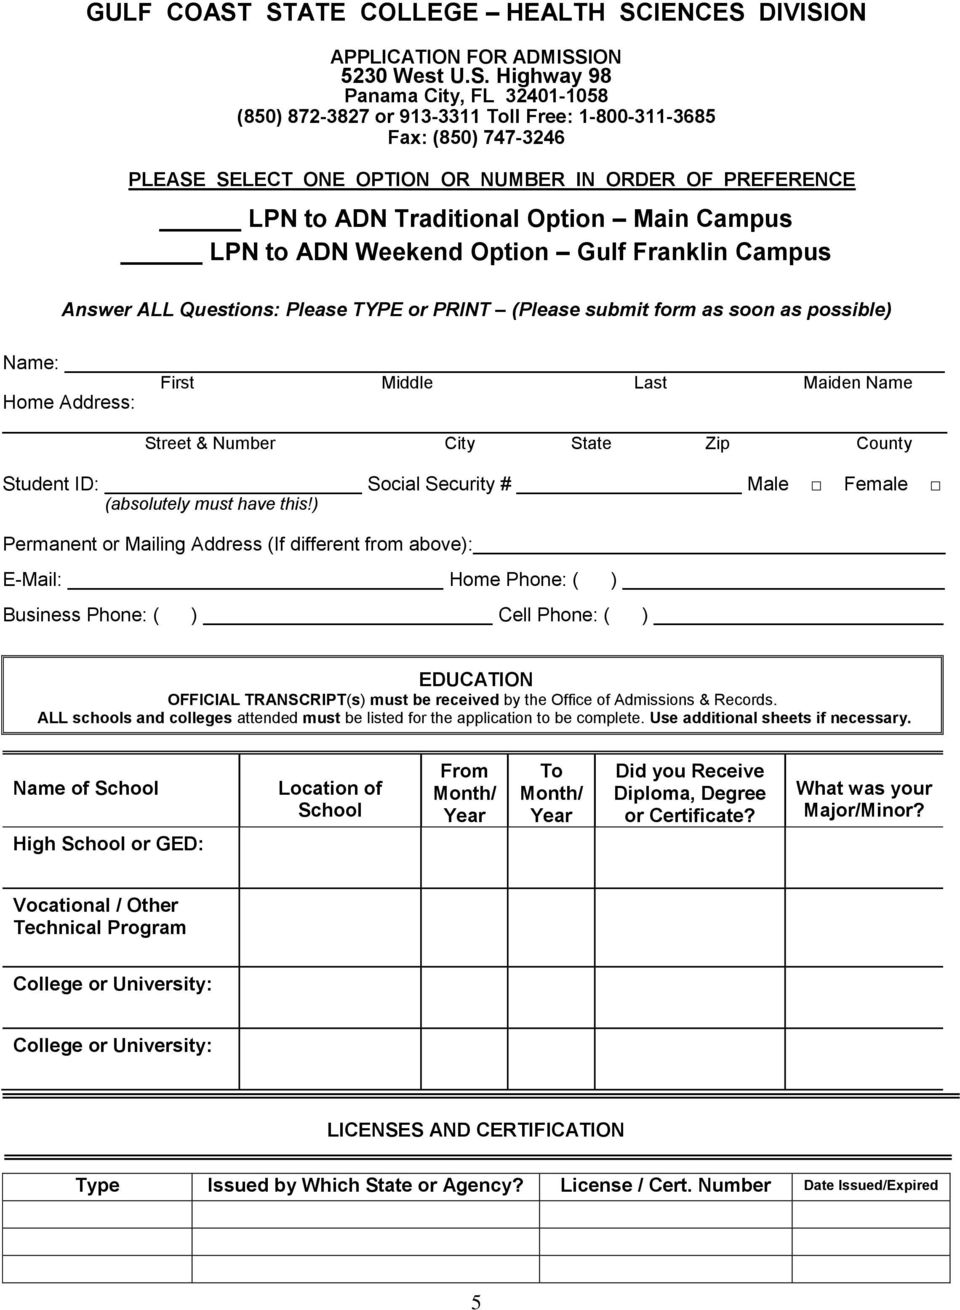 SELECT ONE OPTION OR NUMBER IN ORDER OF PREFERENCE LPN to ADN Traditional Option Main Campus LPN to ADN Weekend Option Gulf Franklin Campus Answer ALL Questions: Please TYPE or PRINT (Please submit